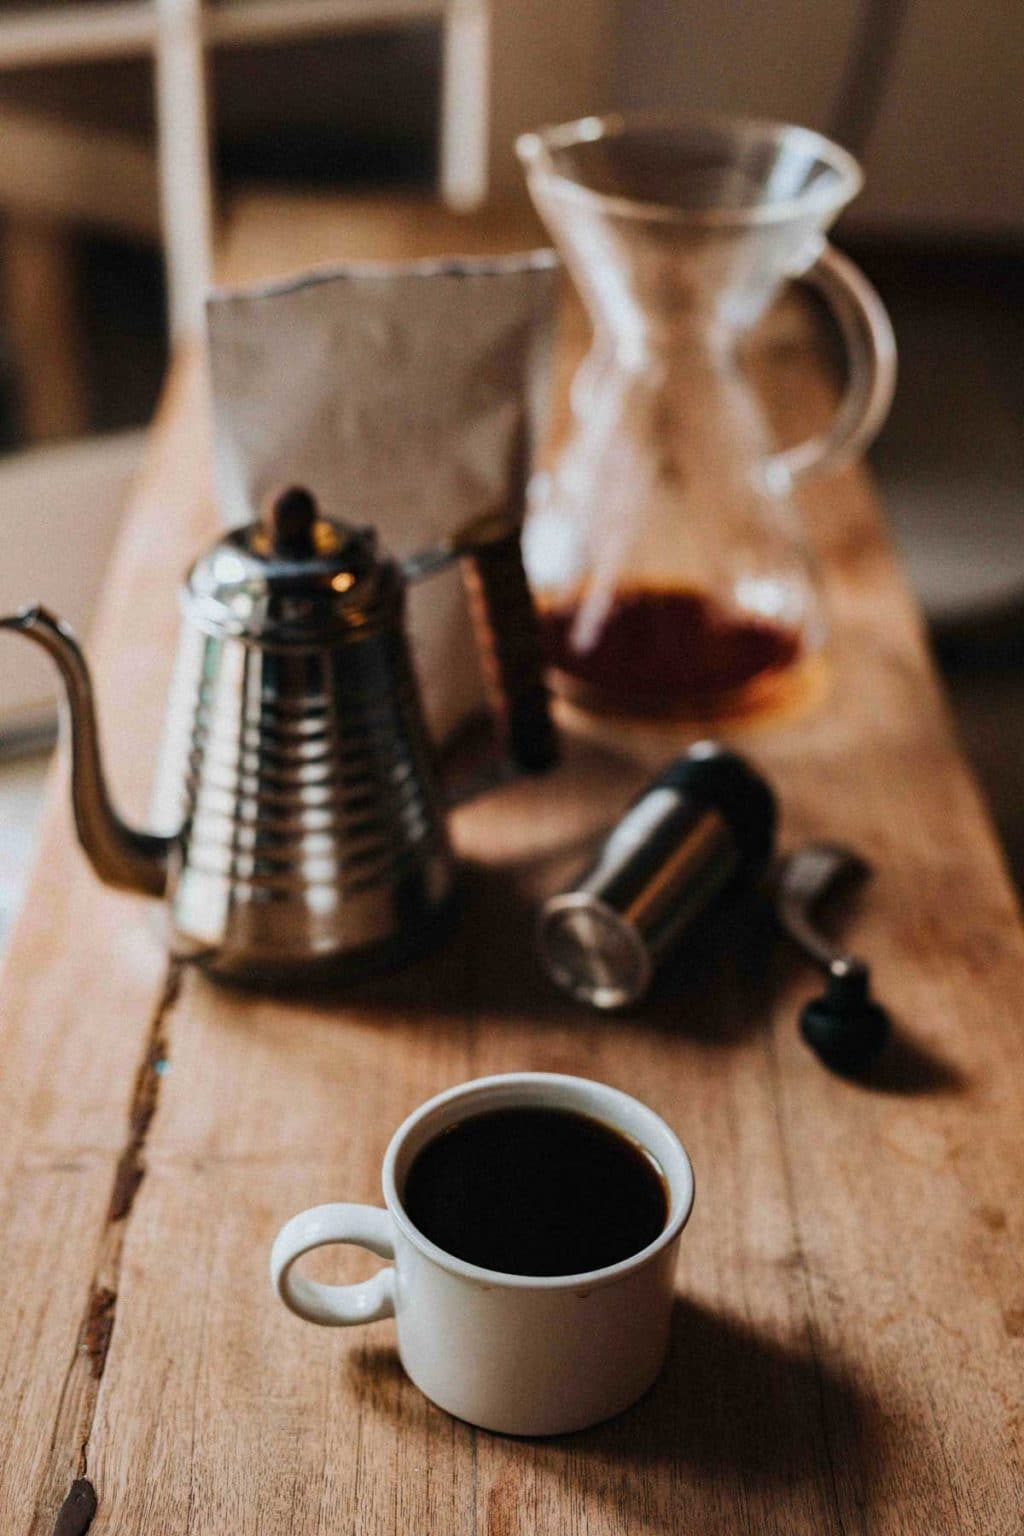 coffee in a white cup on a wooden table, coffee accessories in the background